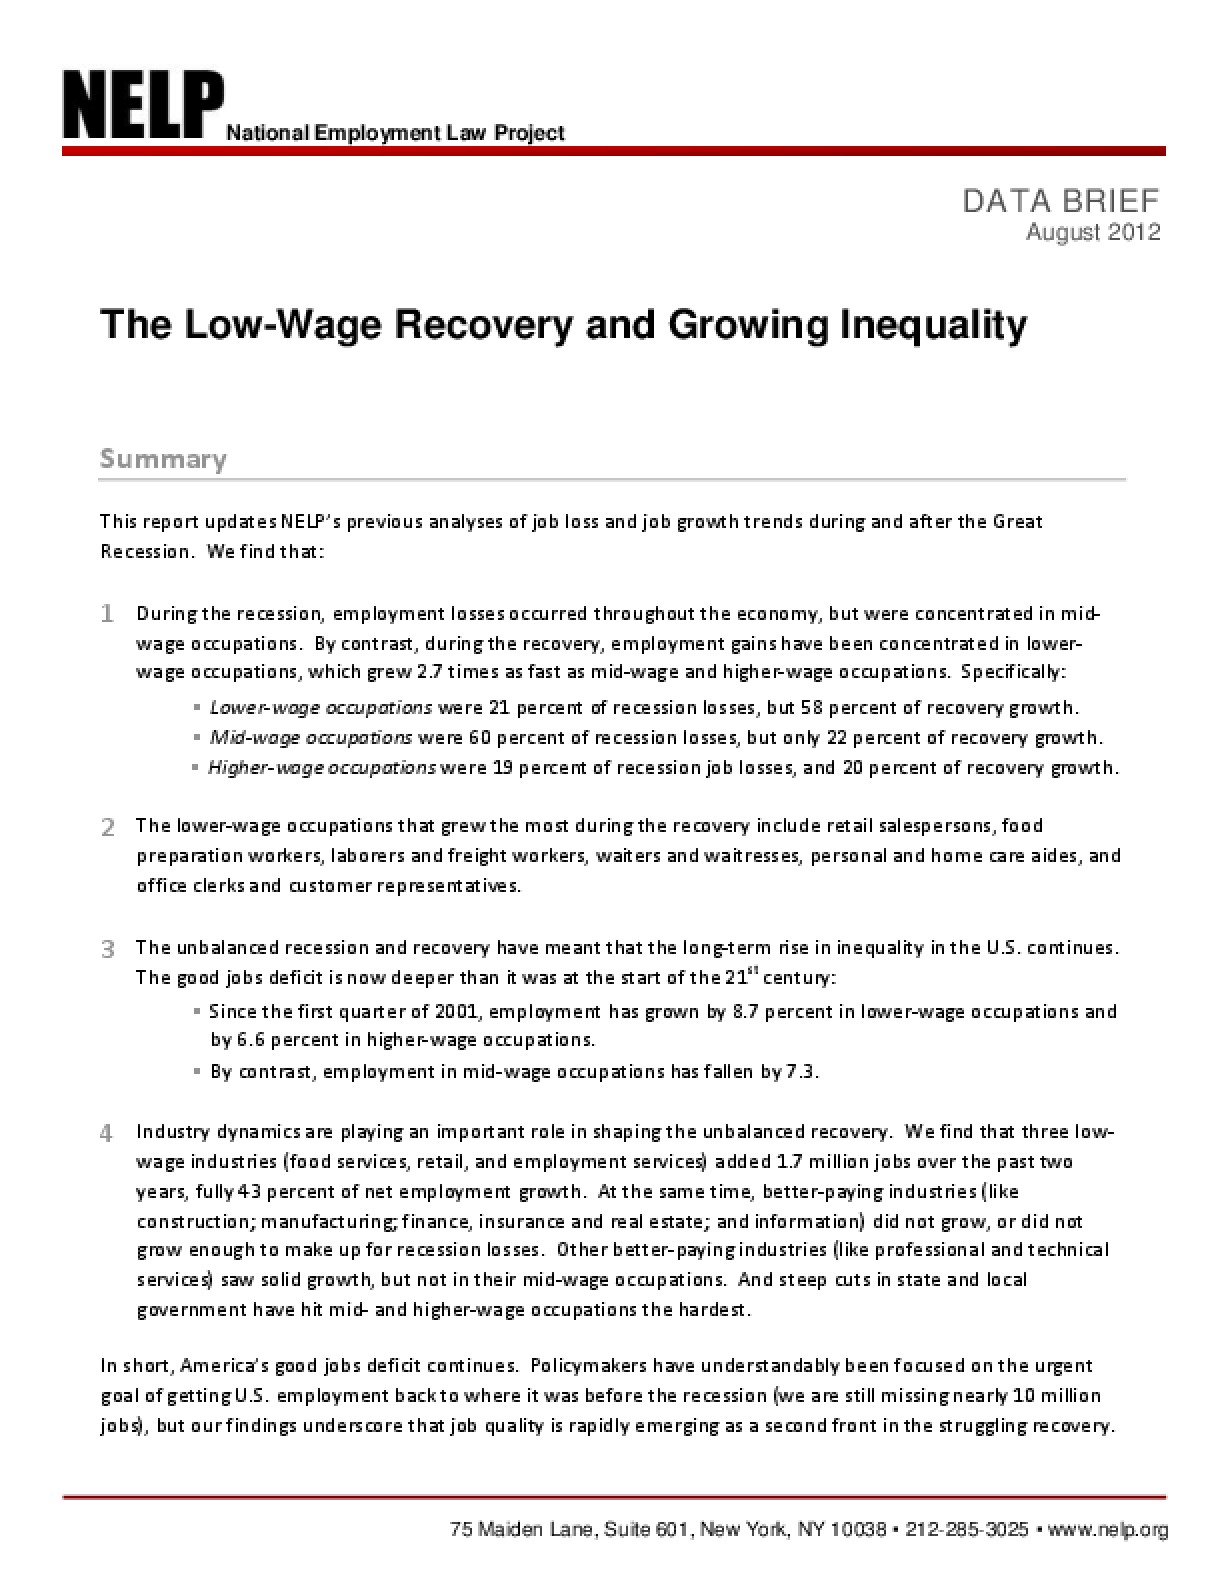 The Low-Wage Recovery and Growing Inequality